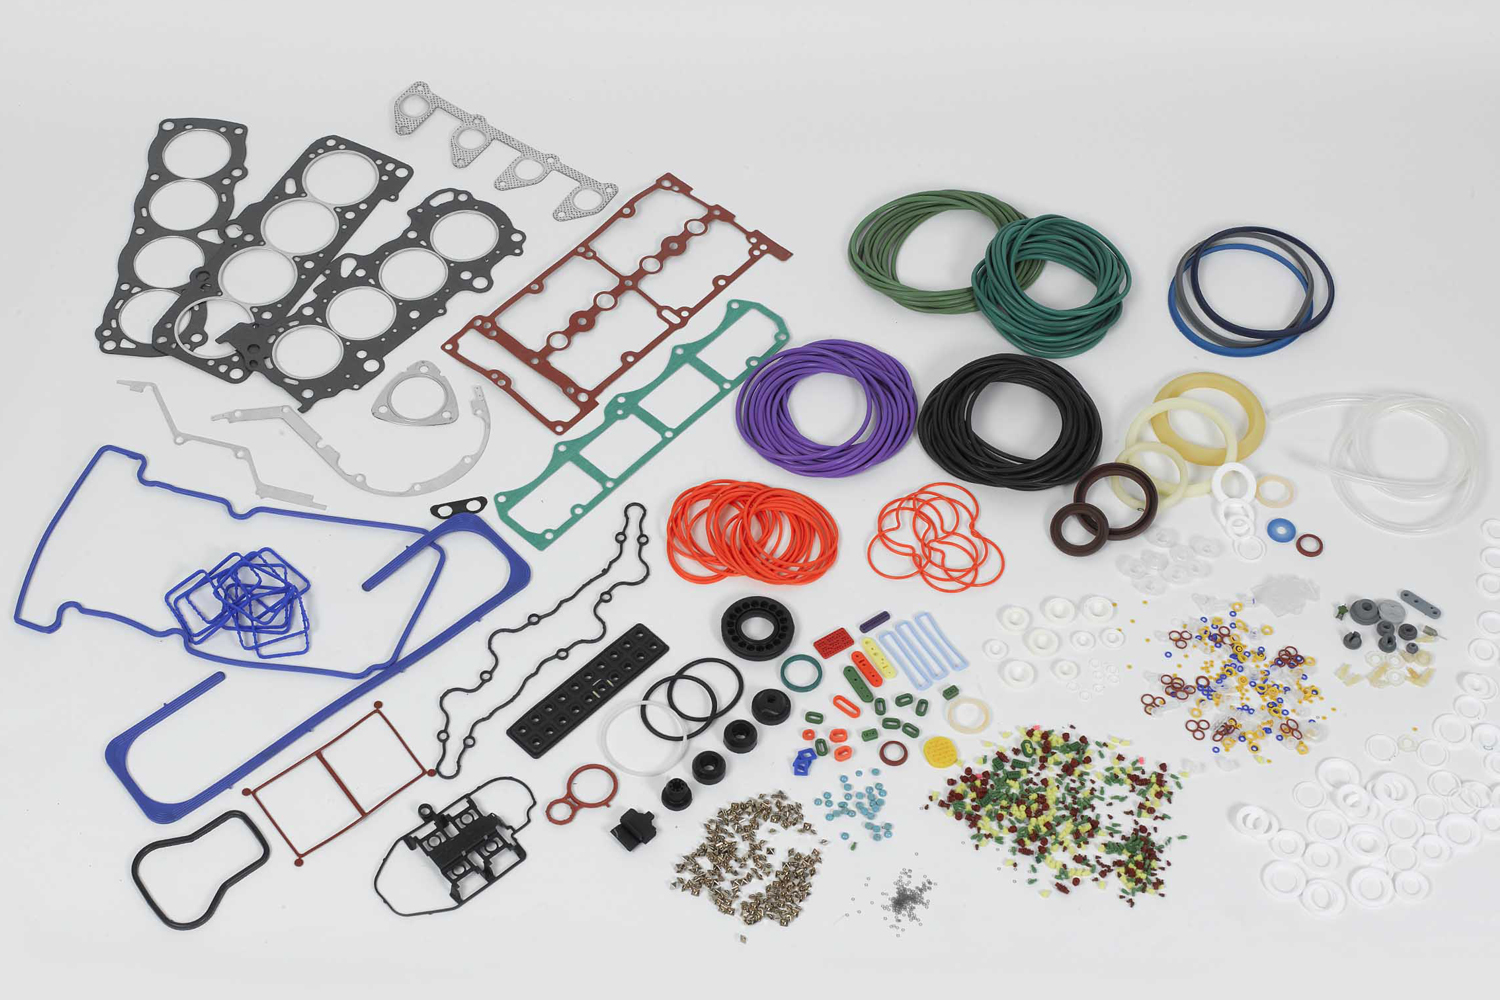 A bunch of o-rings and rubber parts laid out on a table for visual inspection